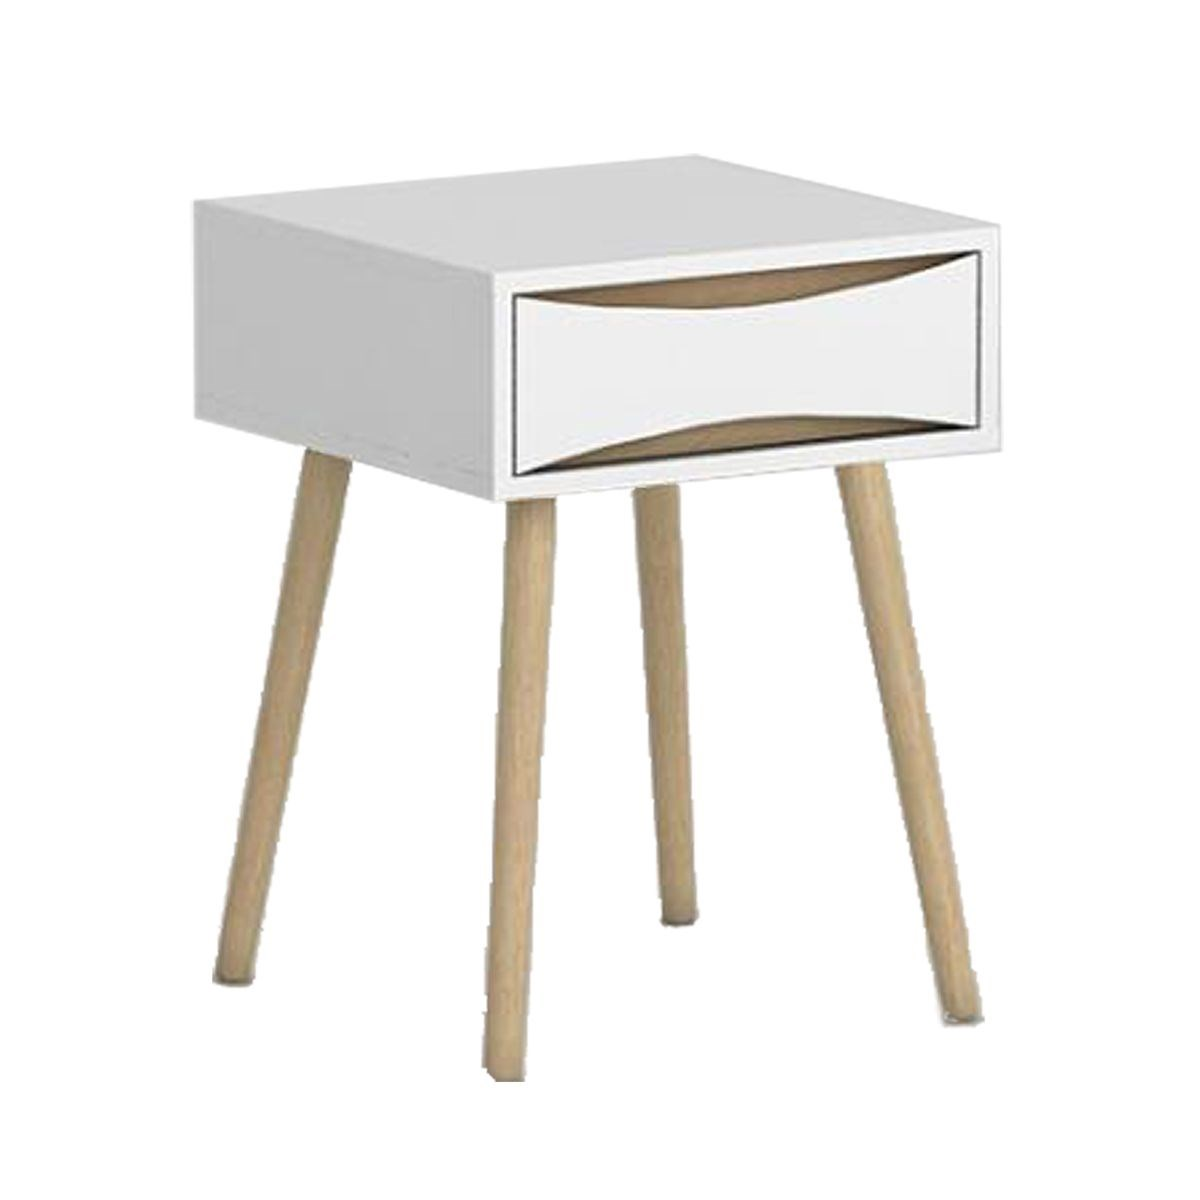 Retro Style Bedside Table with One Drawer